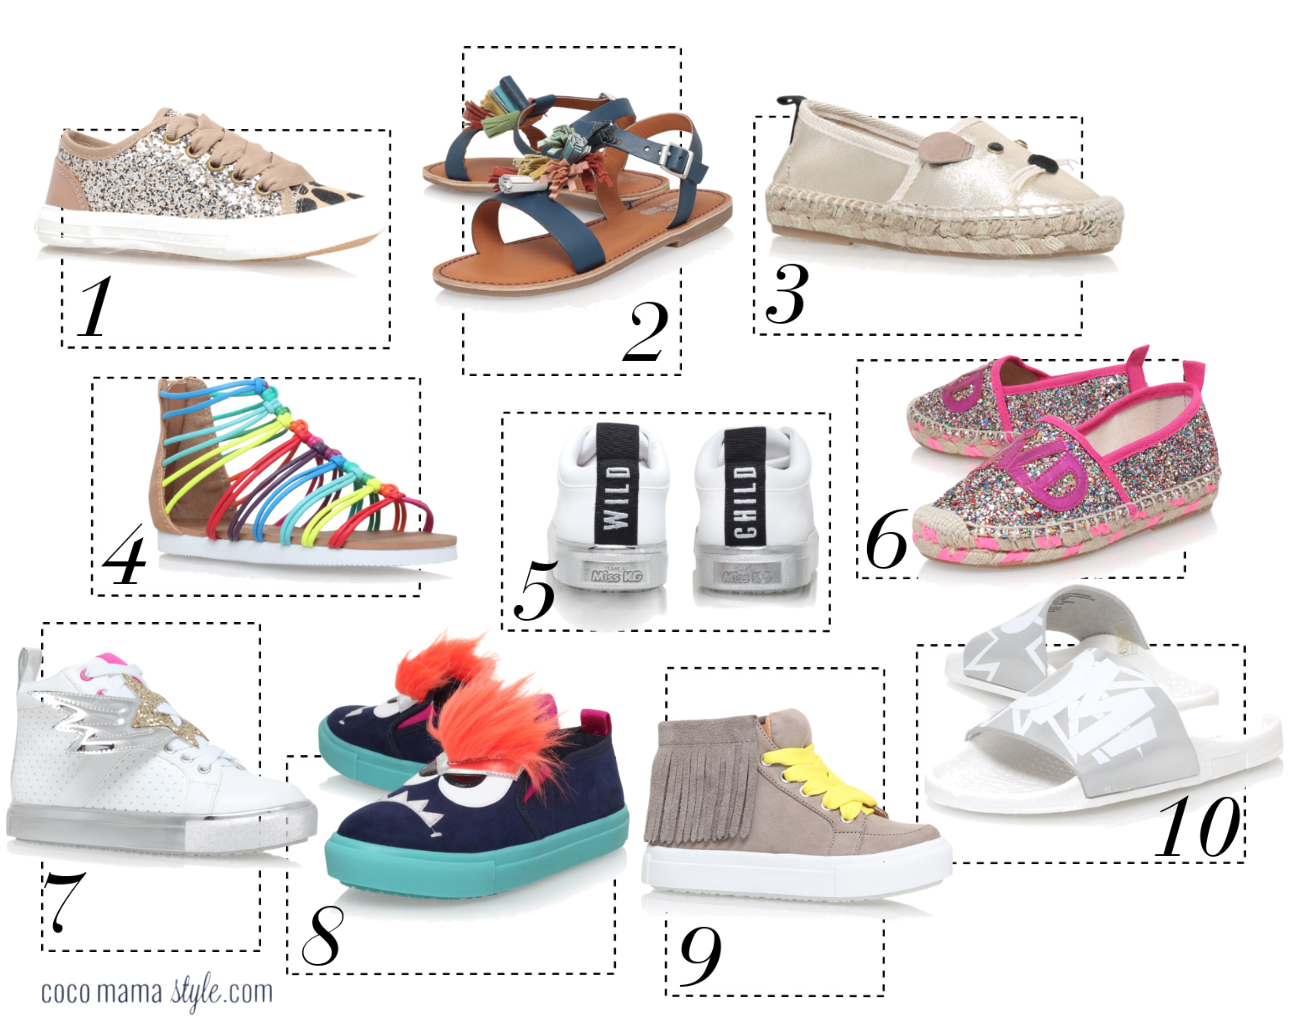 Mini must have | cocomamastyle | Mini Miss KG kids shoes